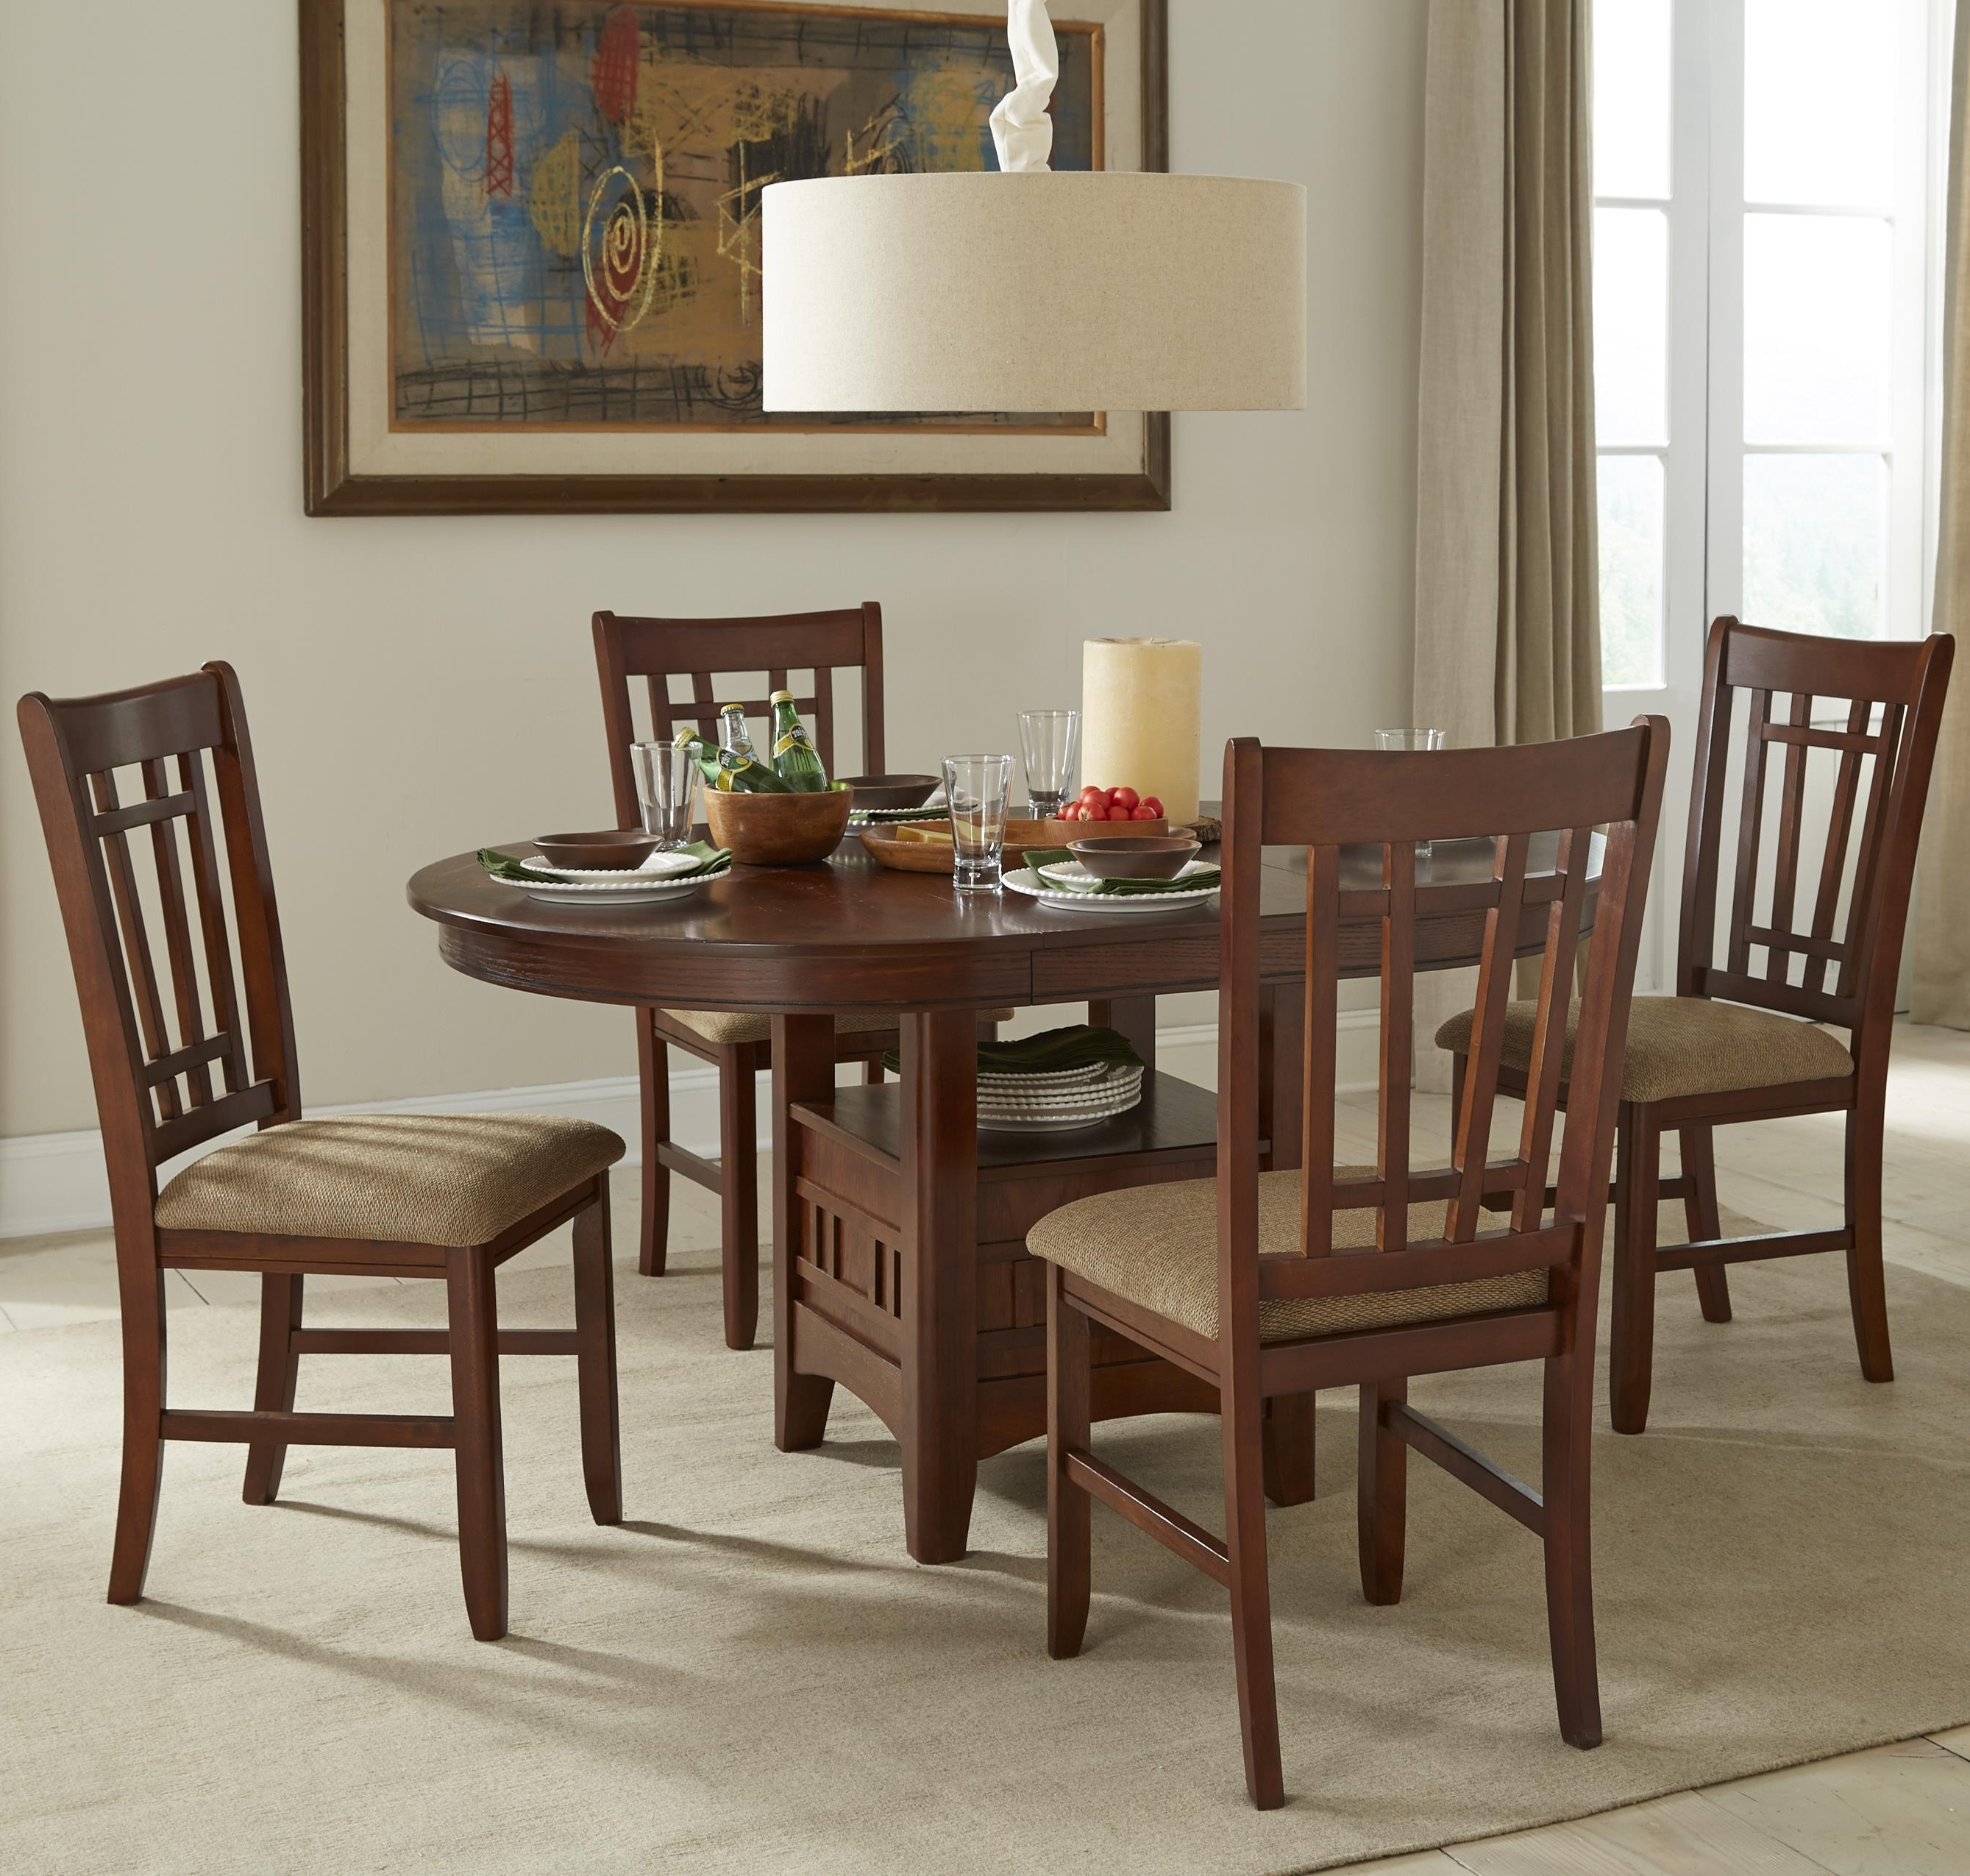 Well Liked Parquet 6 Piece Dining Sets In Oval Dining Table Set With Cushioned Side Chairsintercon (View 6 of 25)